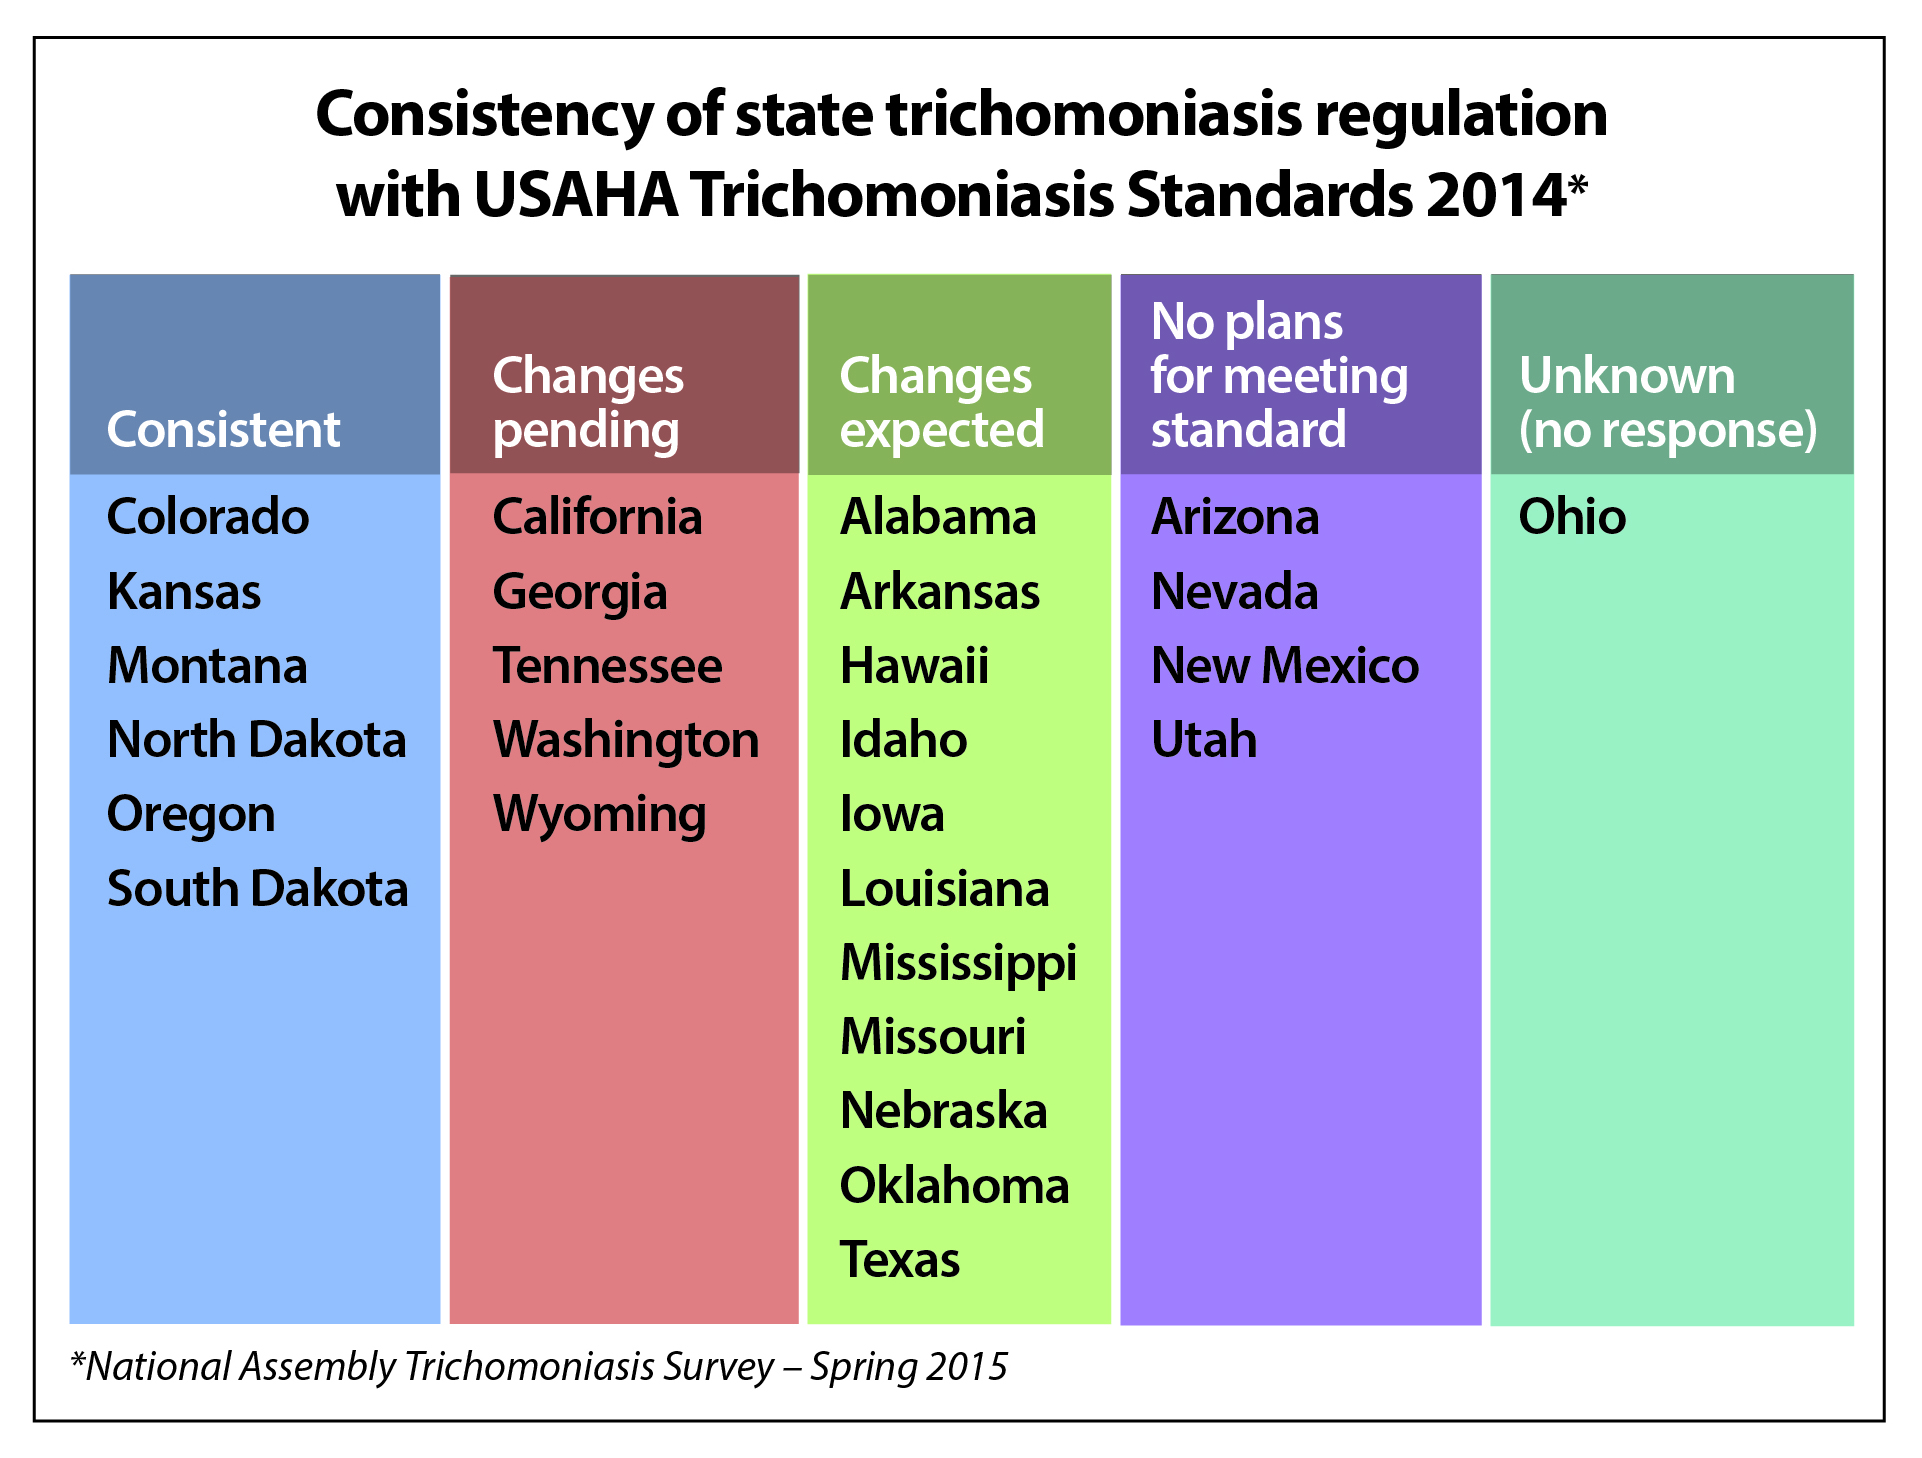 Trich intentions to harmonize regulations